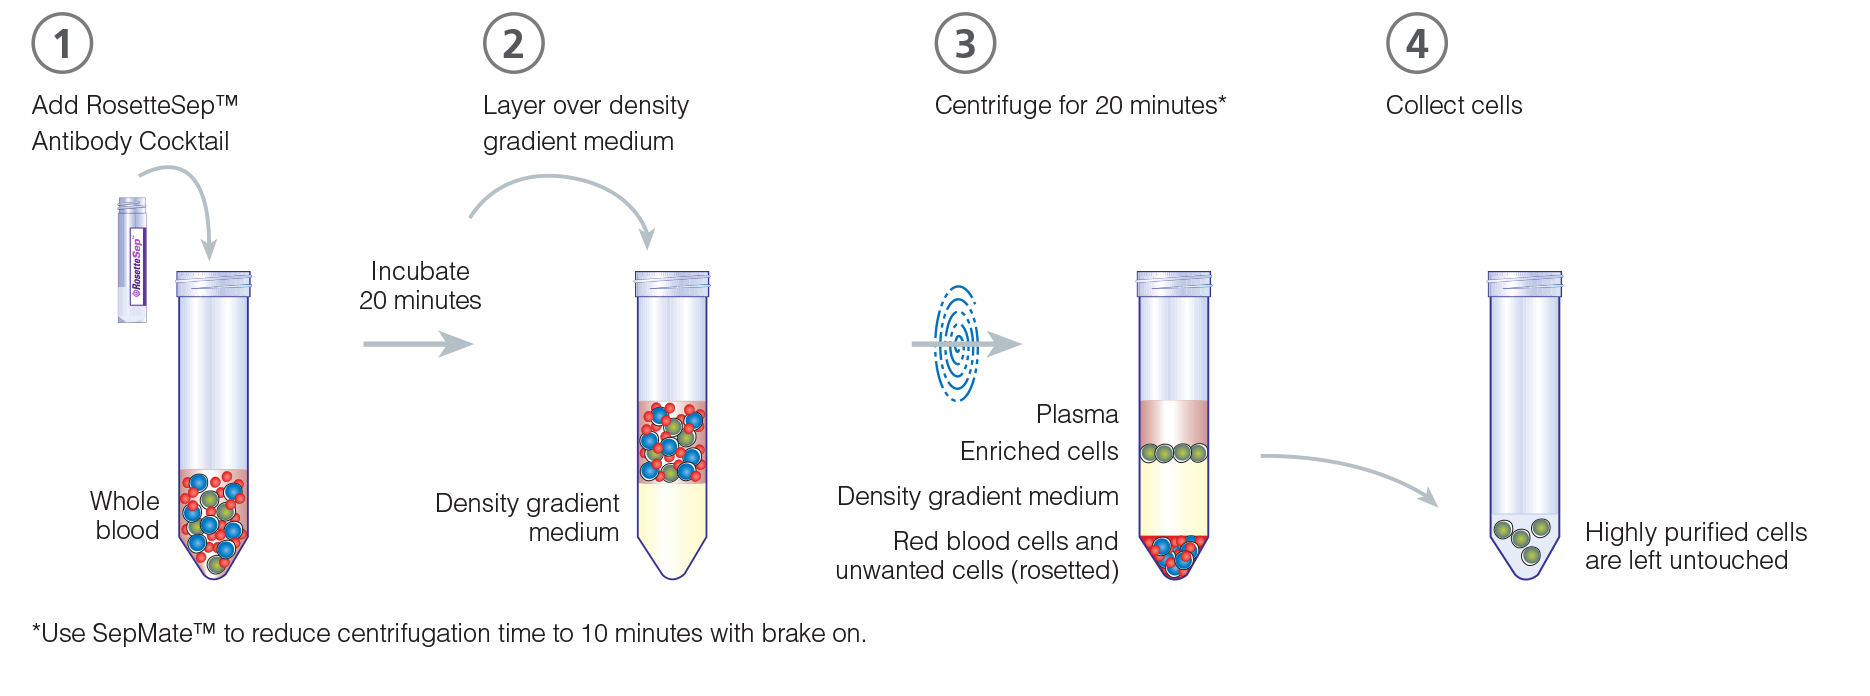 Rosettesep Immunodensity Cell Isolation And Cell Separation